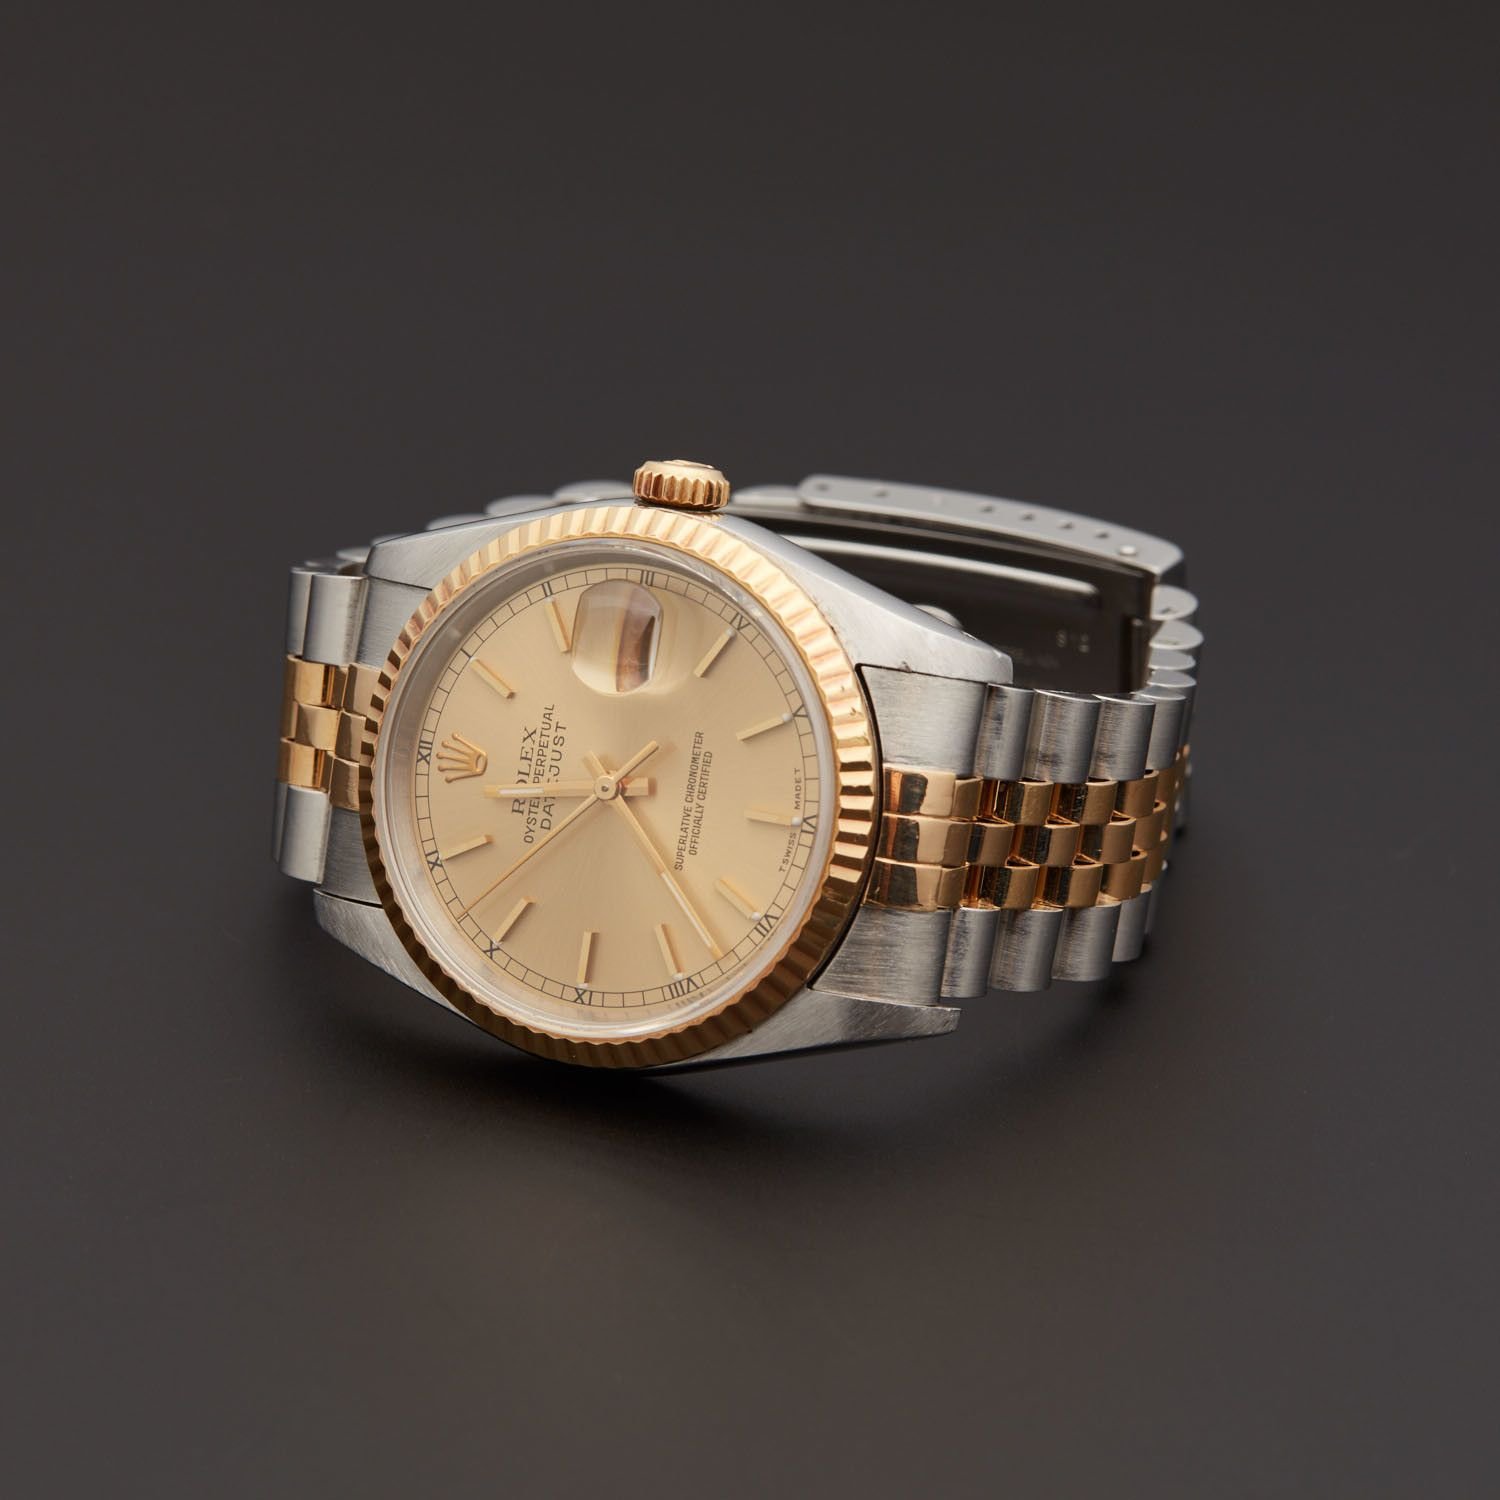 Rolex Datejust Automatic 16233 1690756 Pre Owned Launched Rolex Inaugural Datejust Rolex Datejust Rolex Datejust